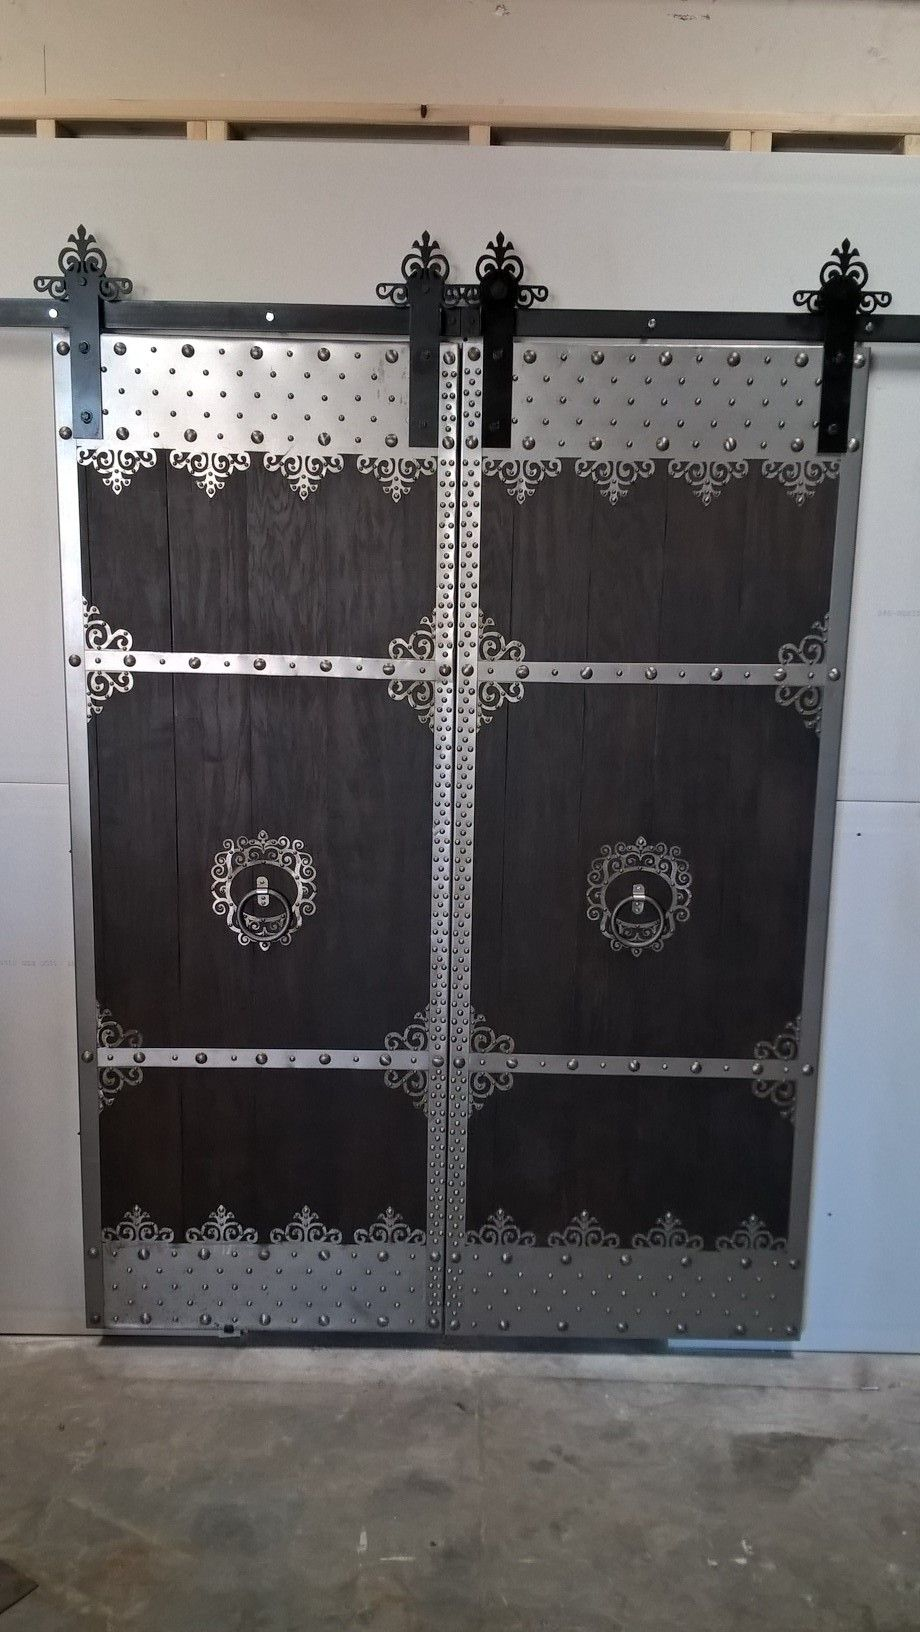 Created and brought to life in the Artfully Rogue workshop. These 80  x 32  oak doors are accented with 22 gauge sheet steel filigree and designed to slide ... & Created and brought to life in the Artfully Rogue workshop. These 80 ...